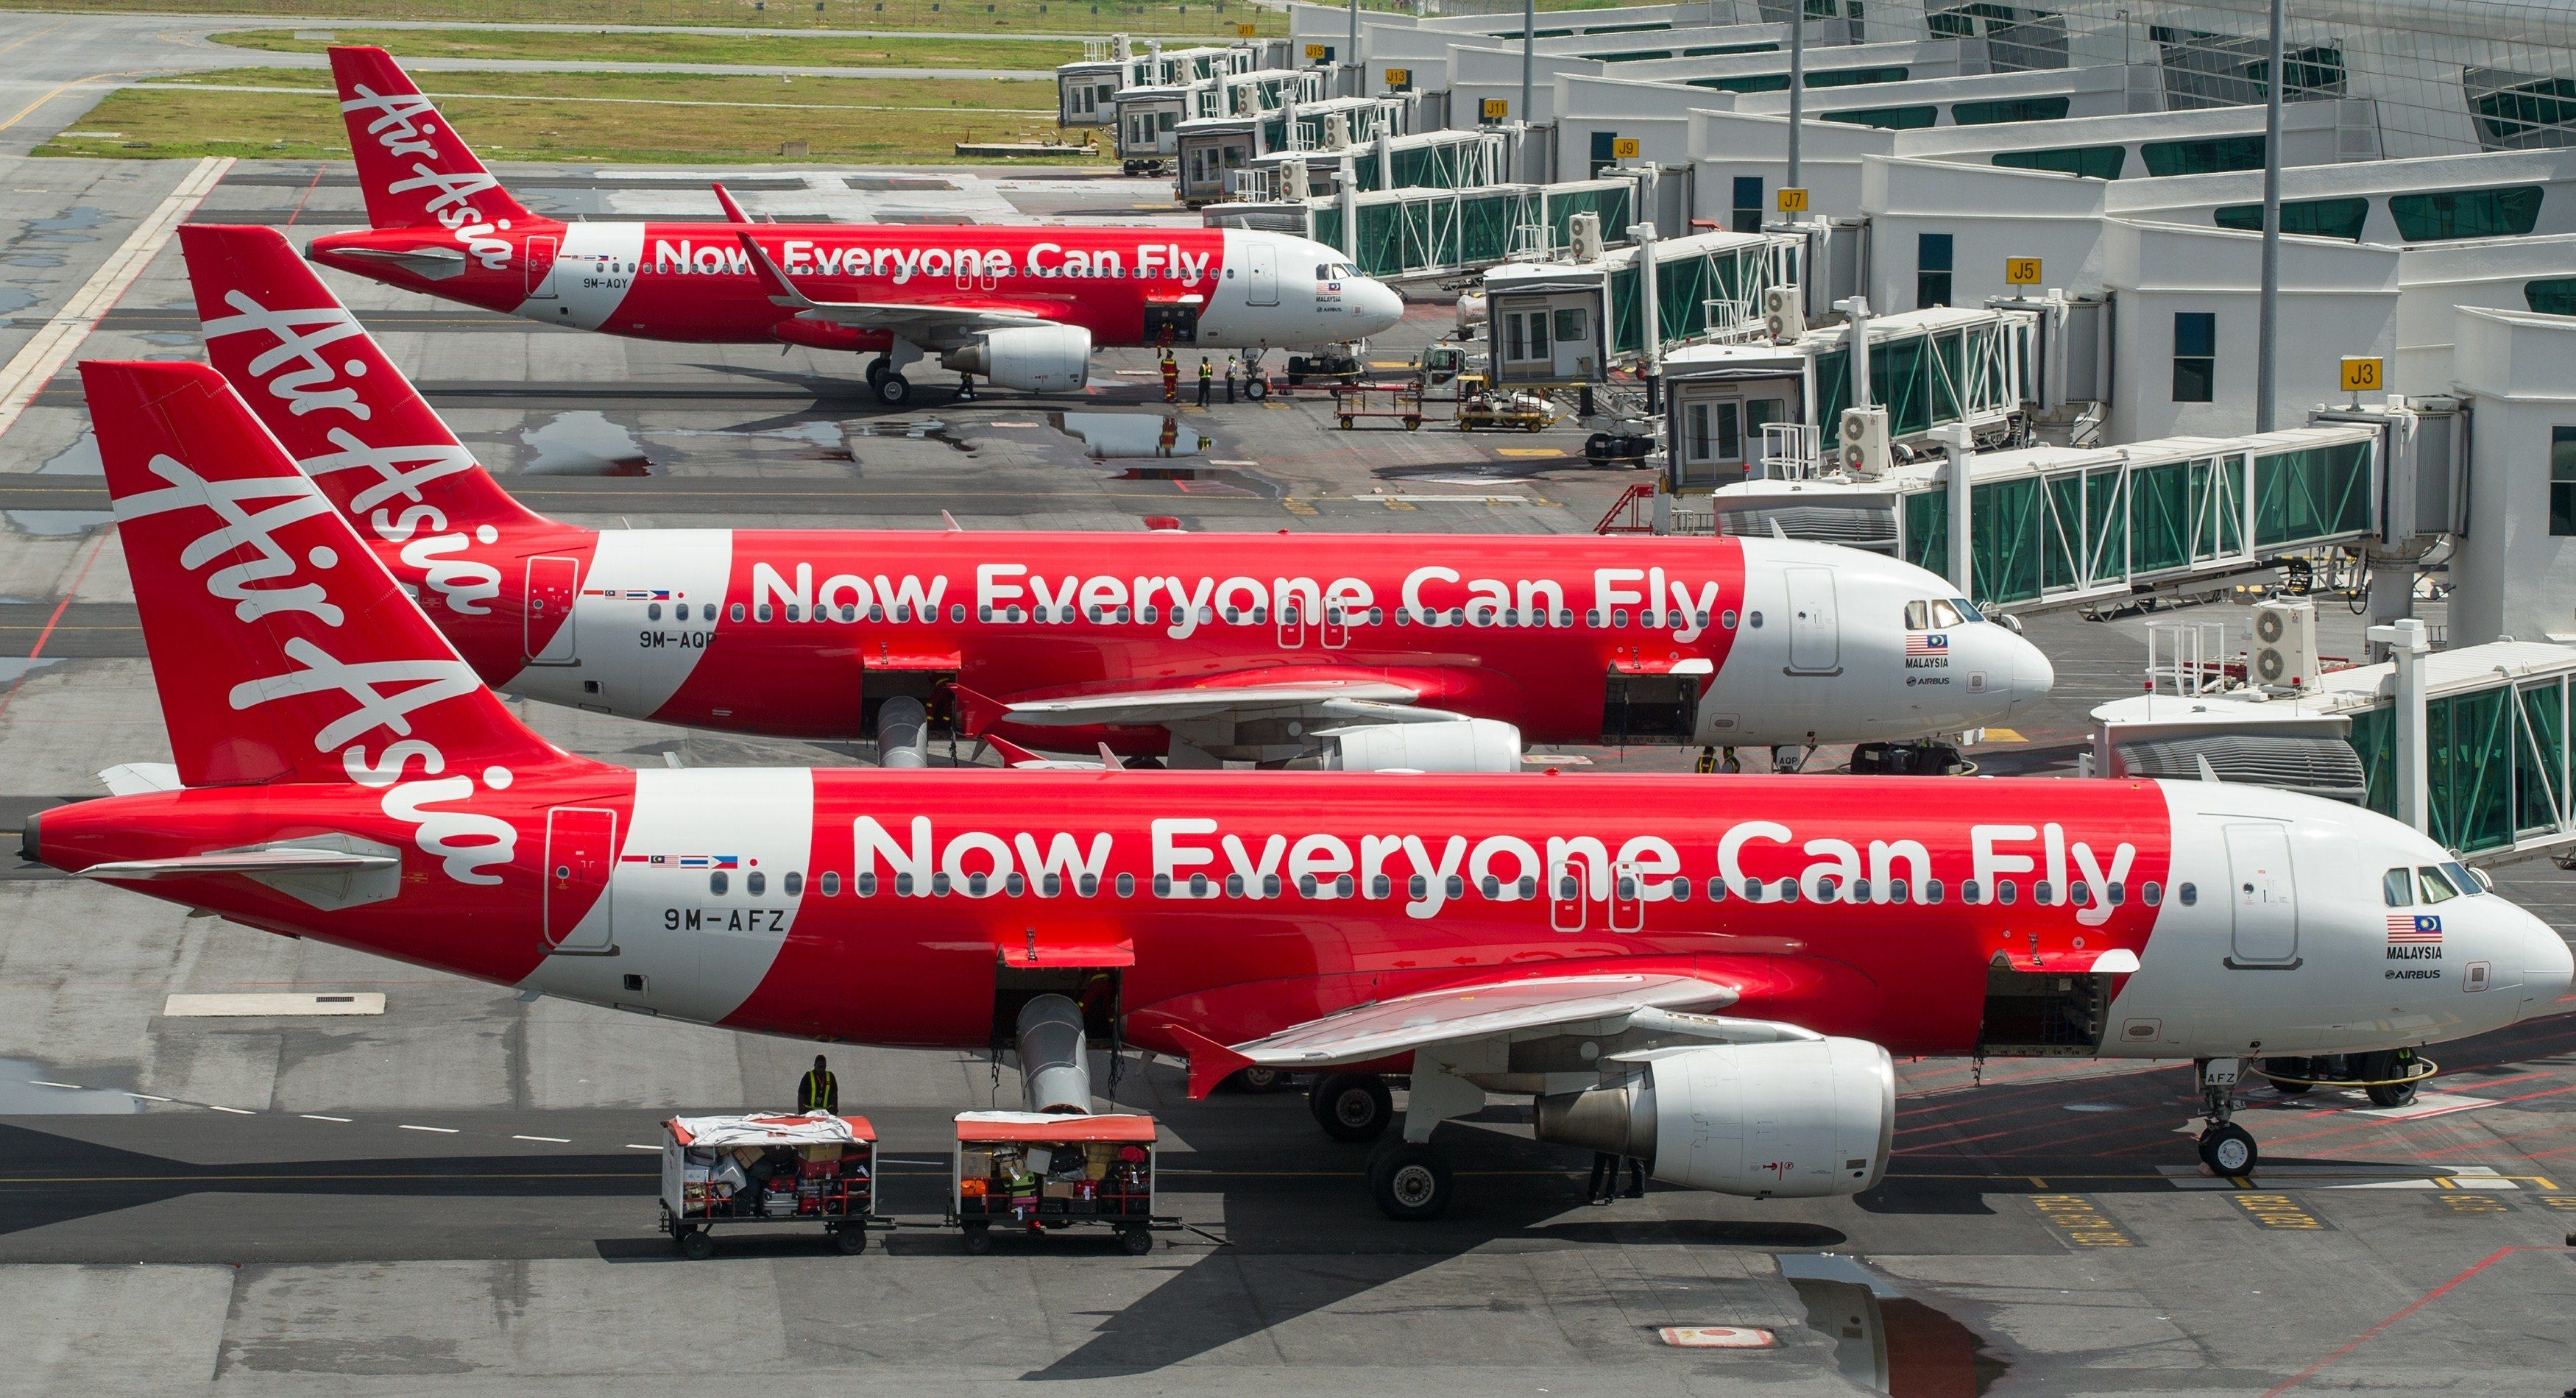 AirAsia Announces AsiatoHawaii Flights from 99 Low